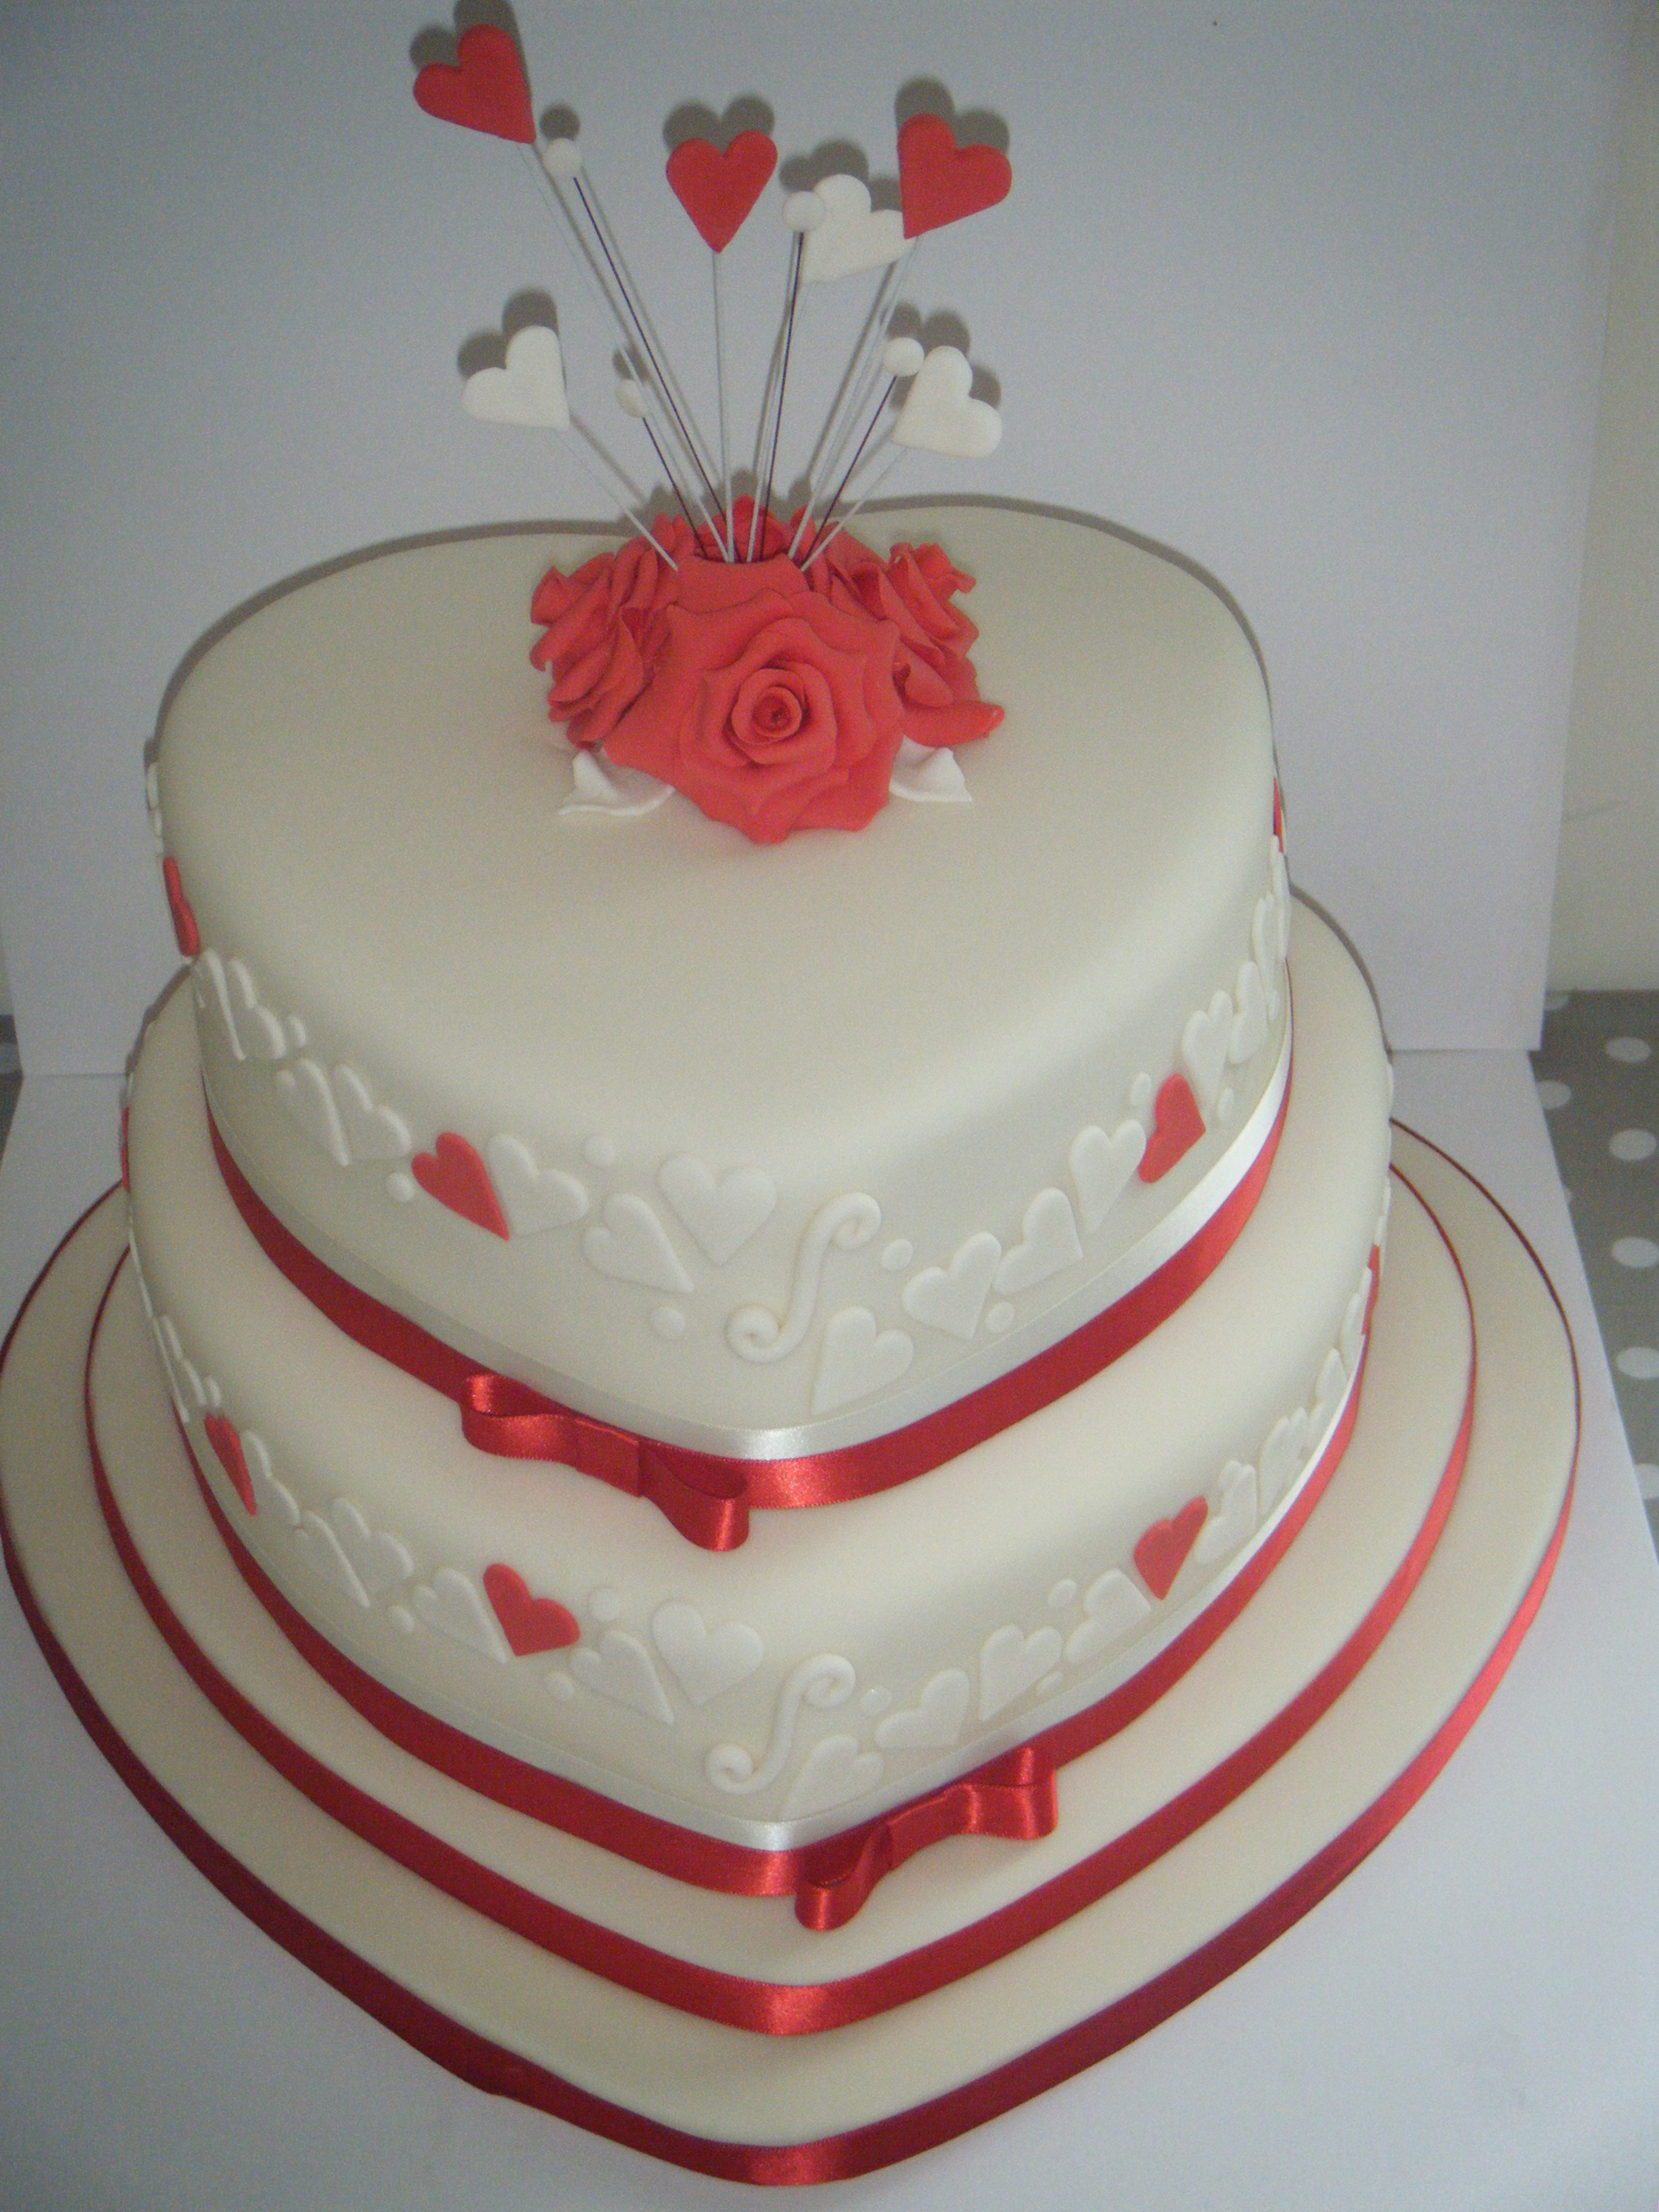 Fluffy Cakes Bespoke Cake Design 2 Tier Red Hearts